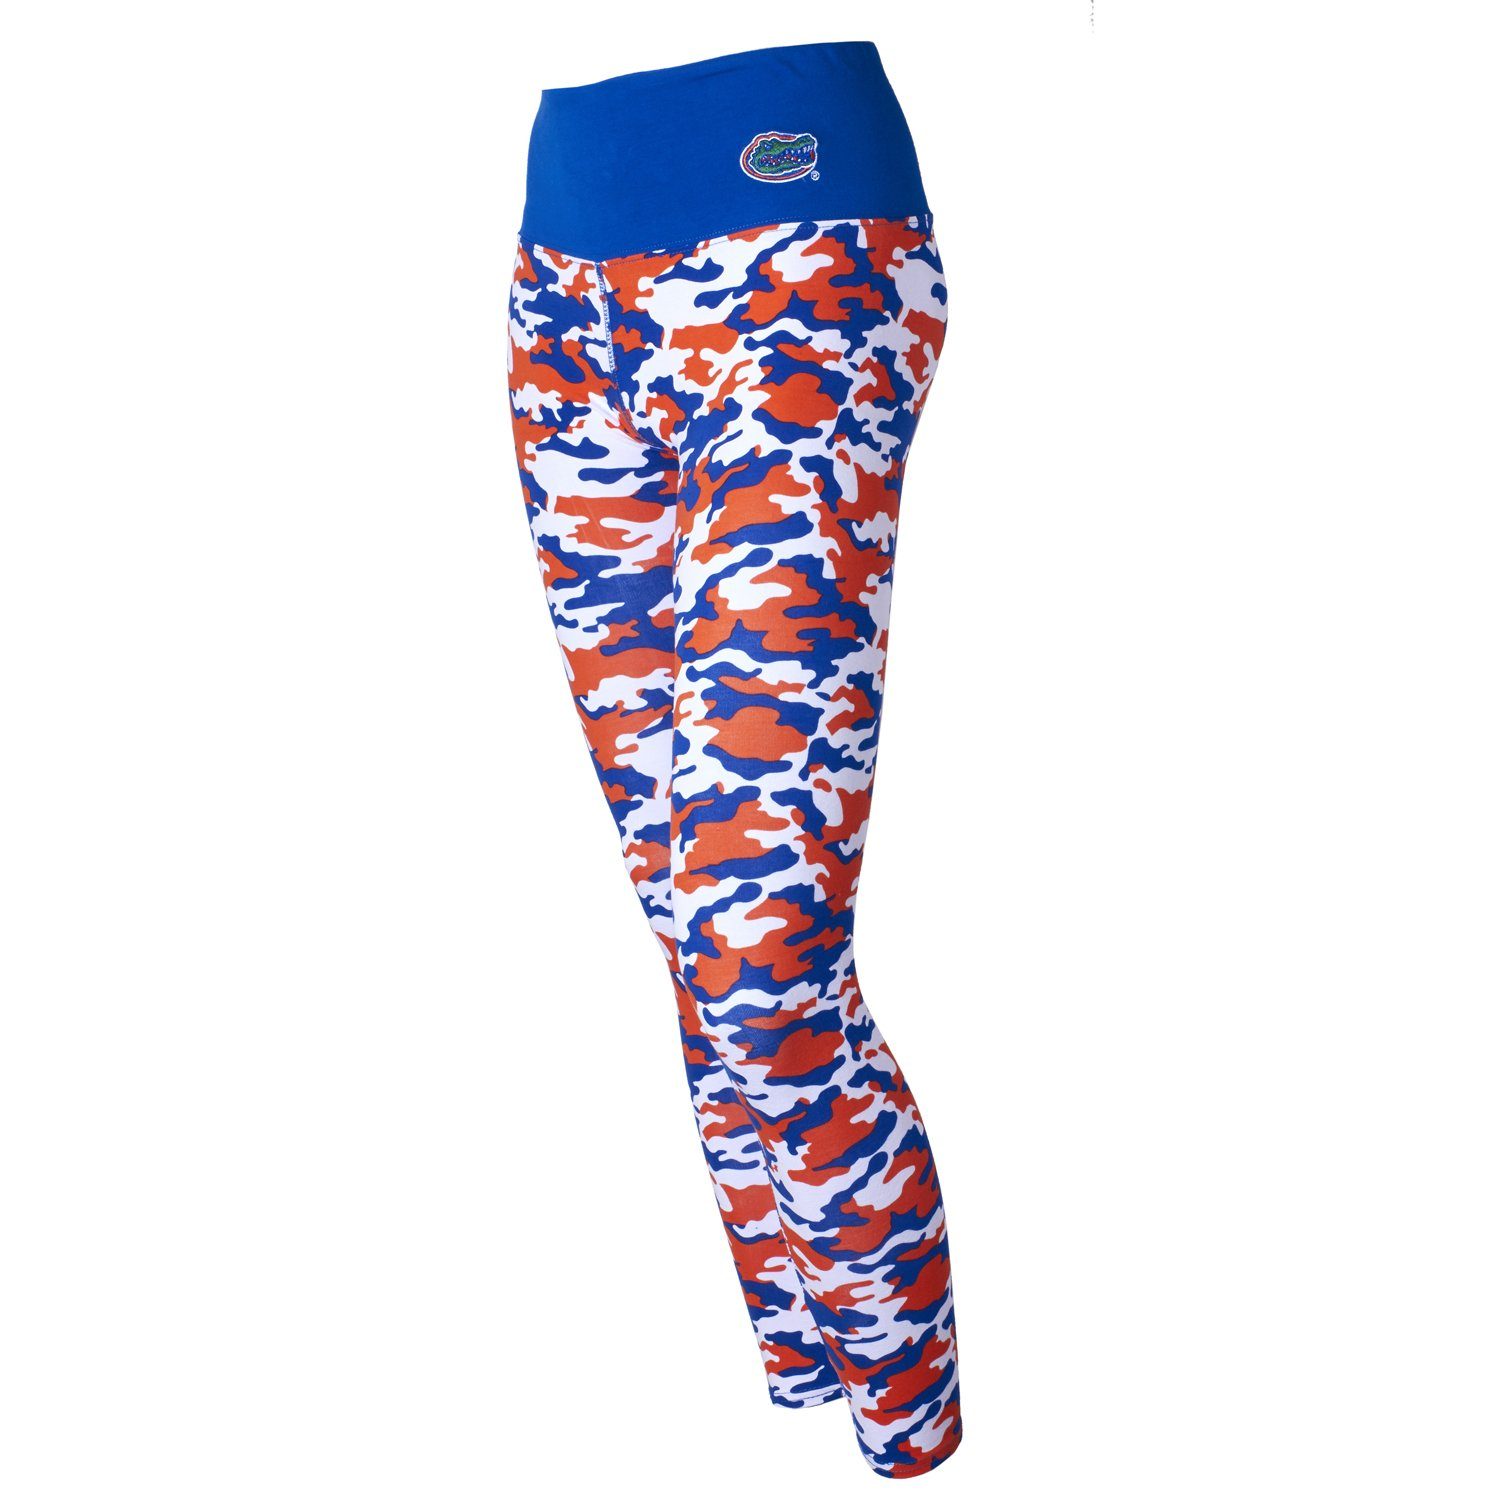 721ddb1f51cb4 TEAM SPIRIT: Proudly show your collegiate spirit with these fun printed  leggings, available in a variety of universit colors. Make a bold statement  at the ...